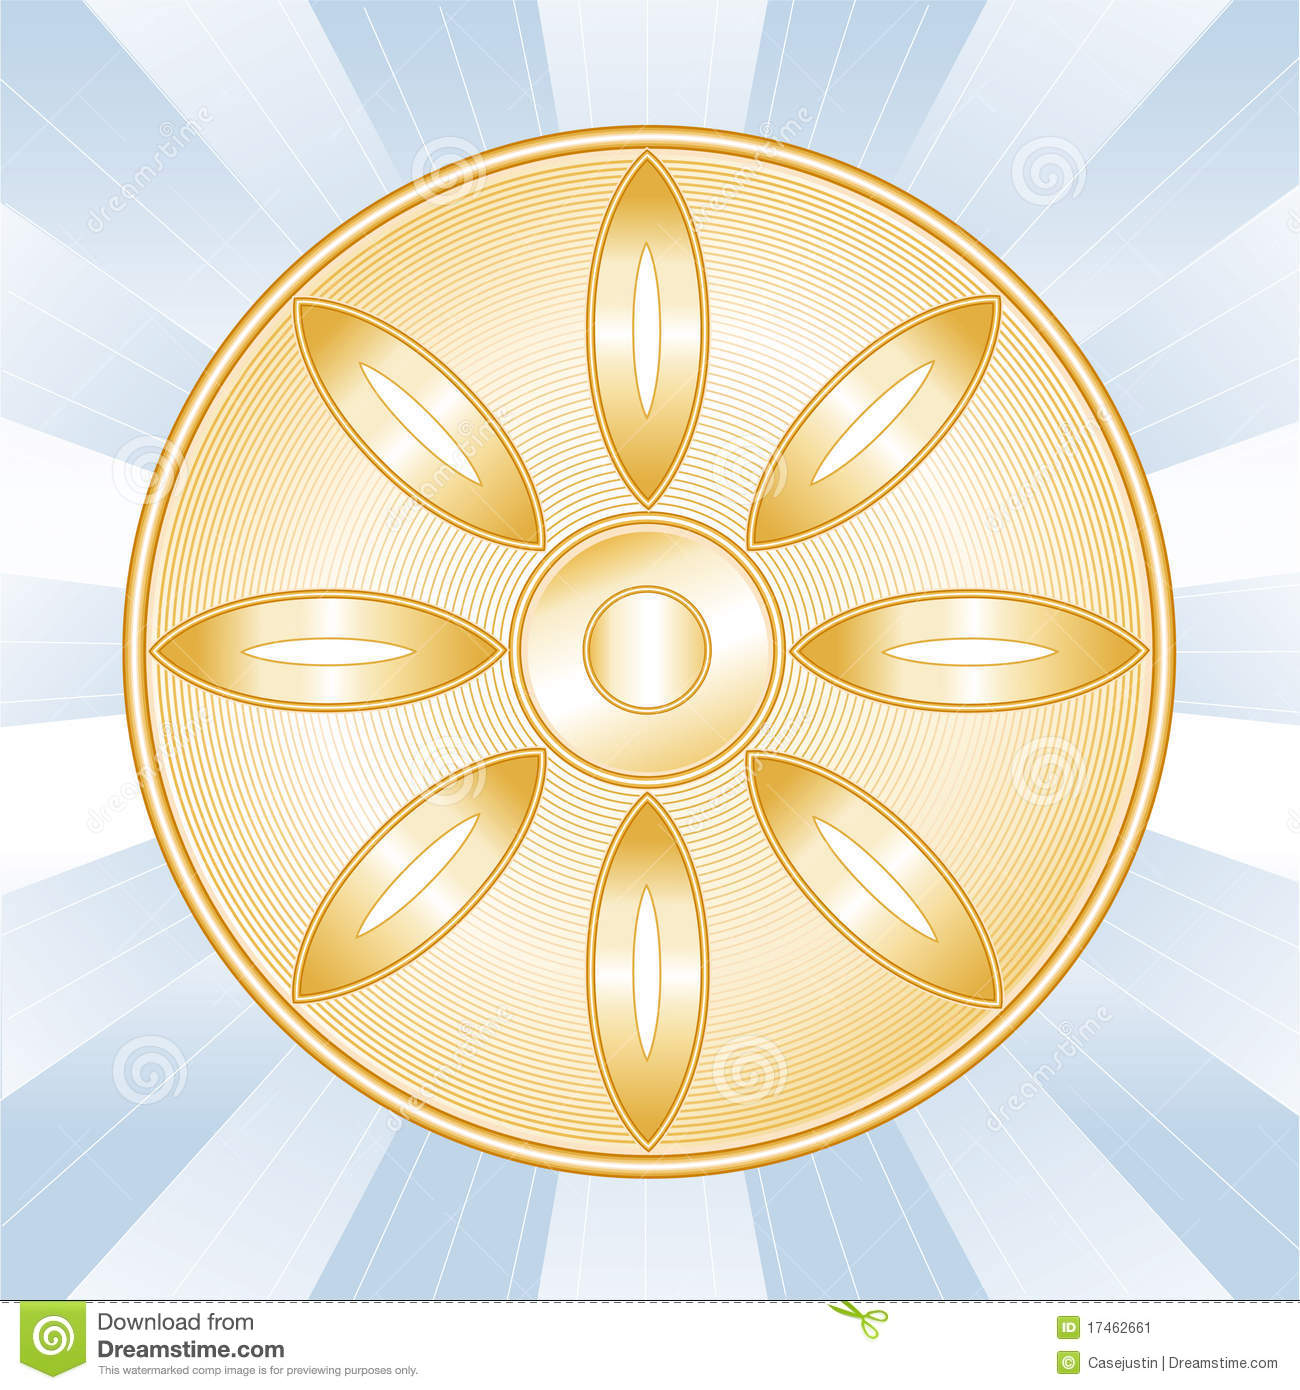 Buddhist Symbol Stock Vector Illustration Of Faith Buddhism 17462661